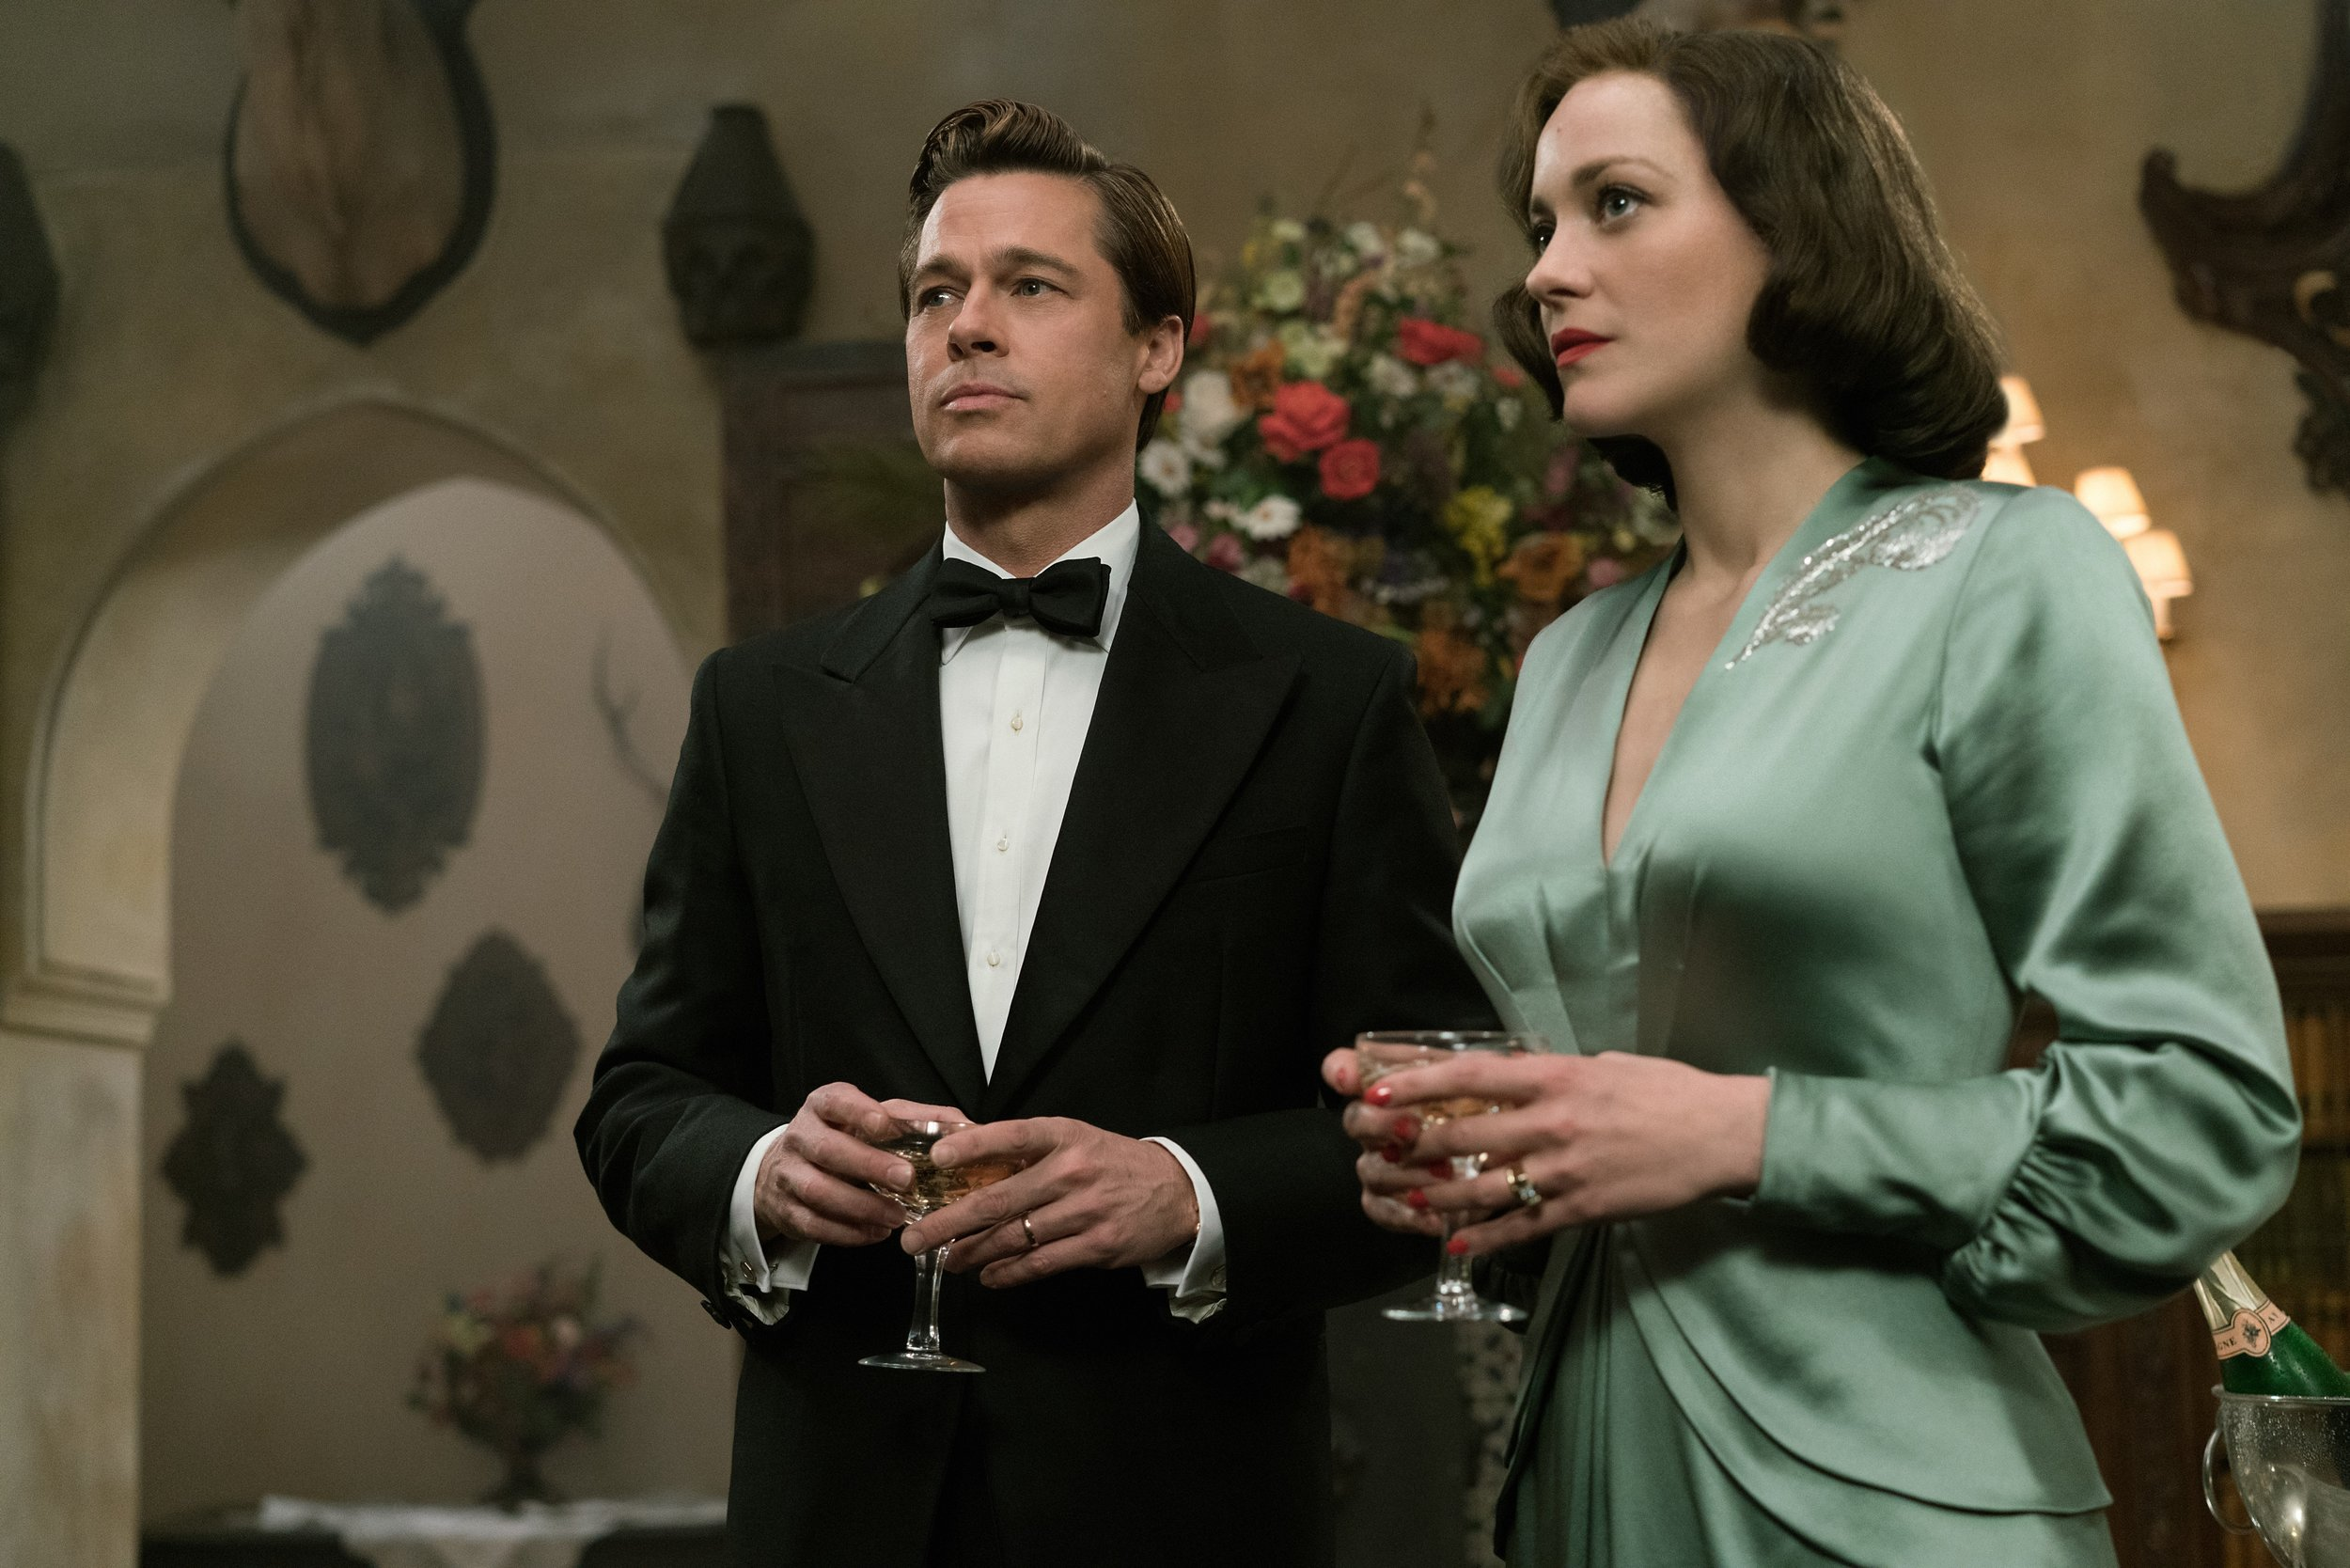 Brad Pitt and Marion Cotillard as glamorous spies in  Allied.  (Paramount)